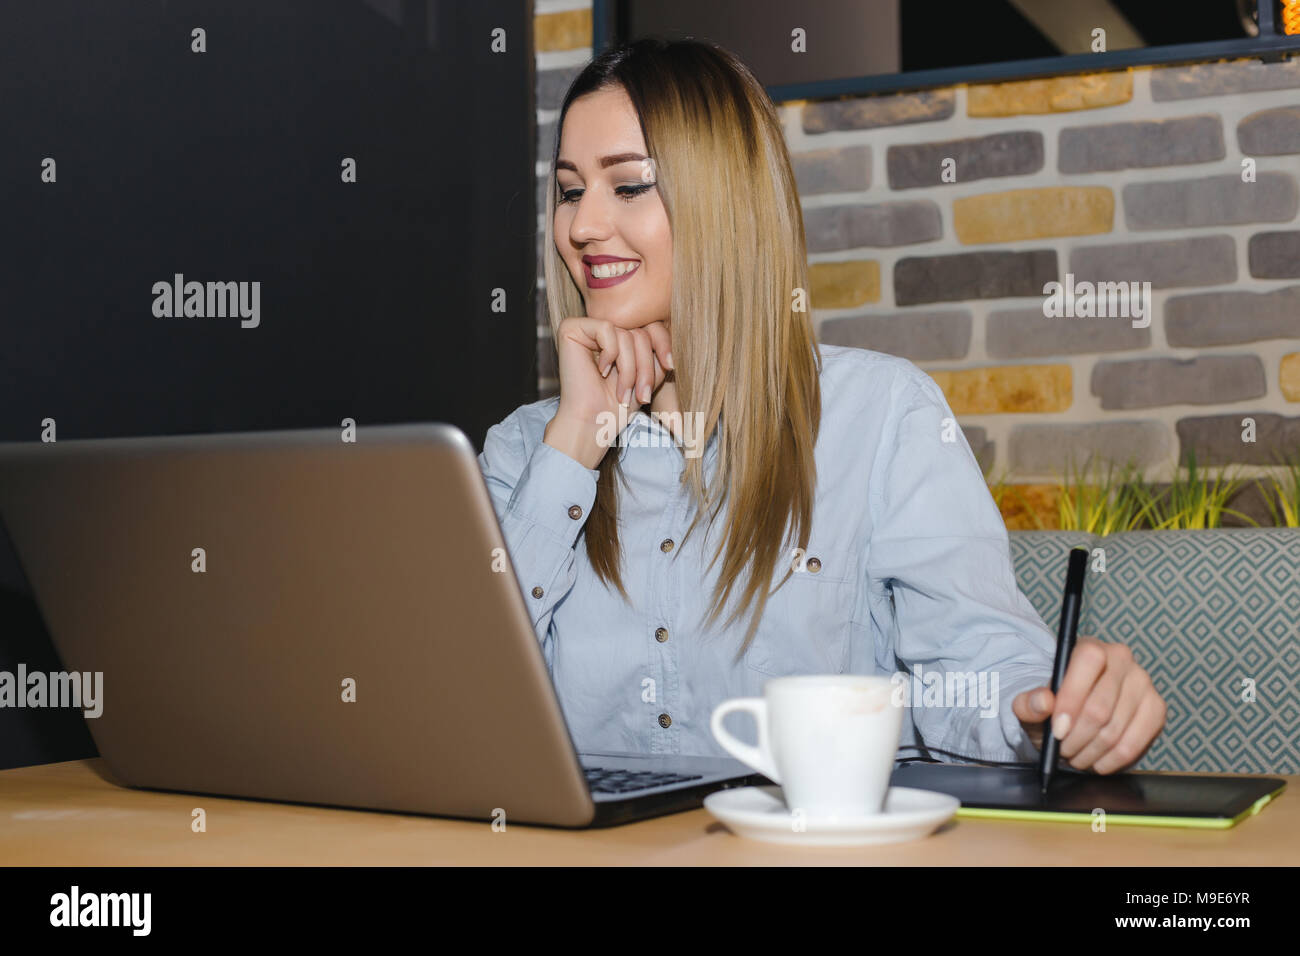 Graphic designer sitting at table in cafe and  using digital tablet and computer tools working on a new project. Stock Photo